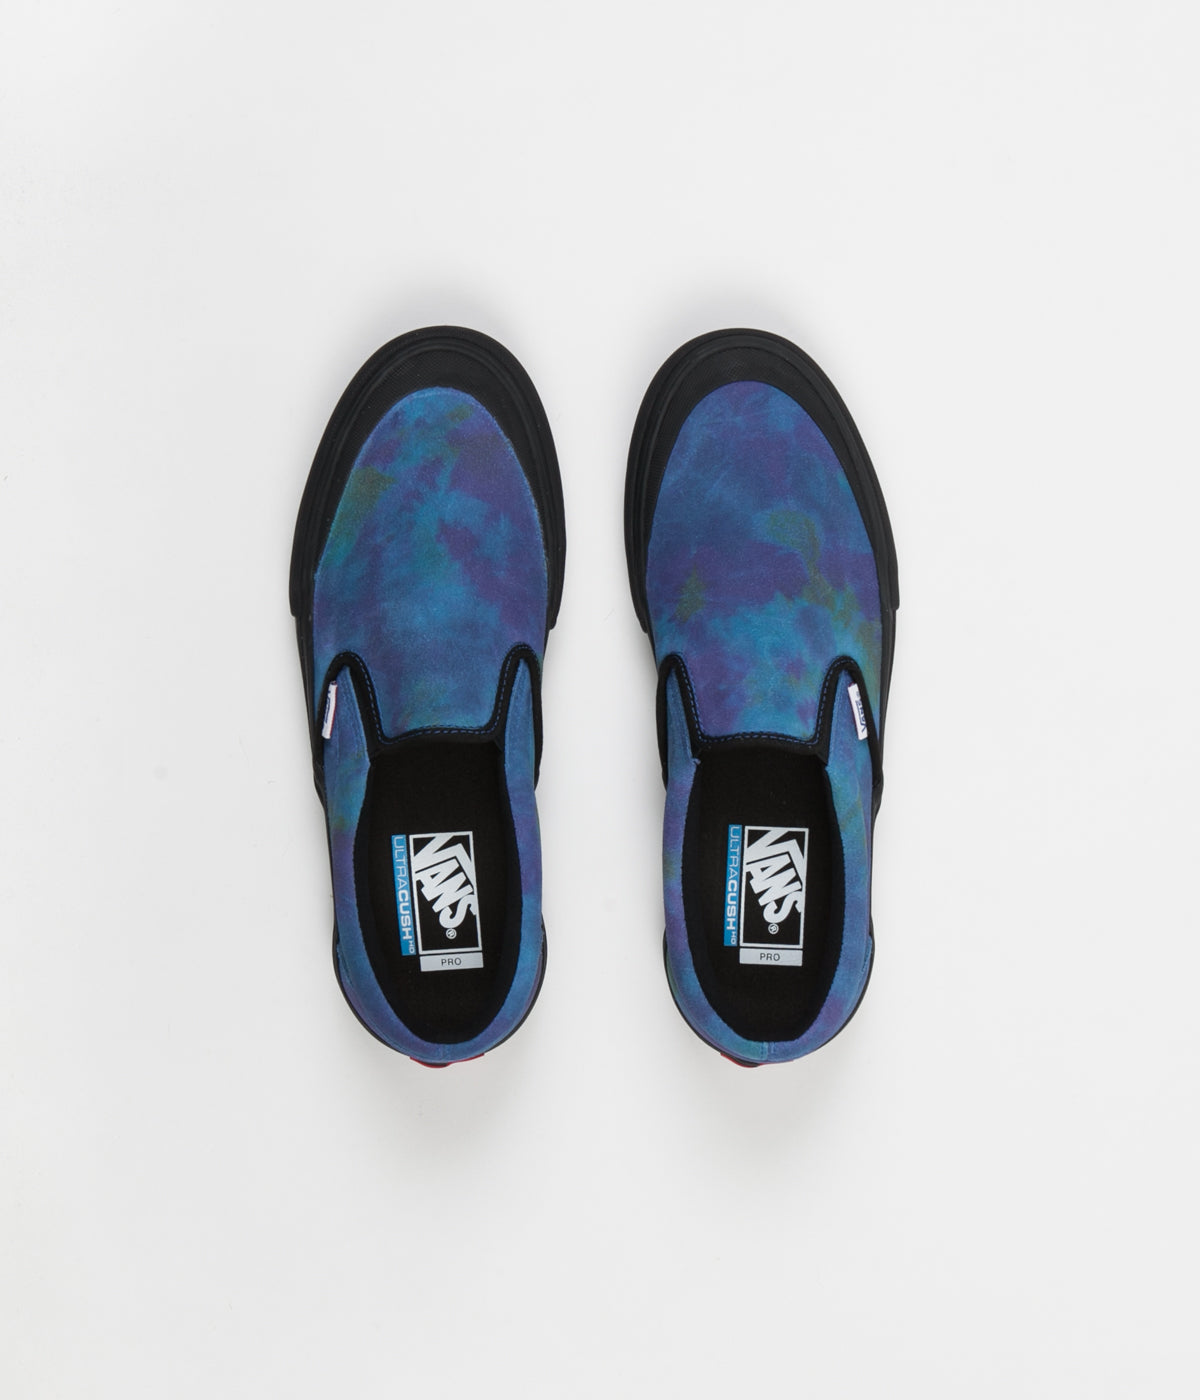 4ae662abce7292 Vans Slip-On Pro Shoes - (Ronnie Sandoval) Northern Lights ...